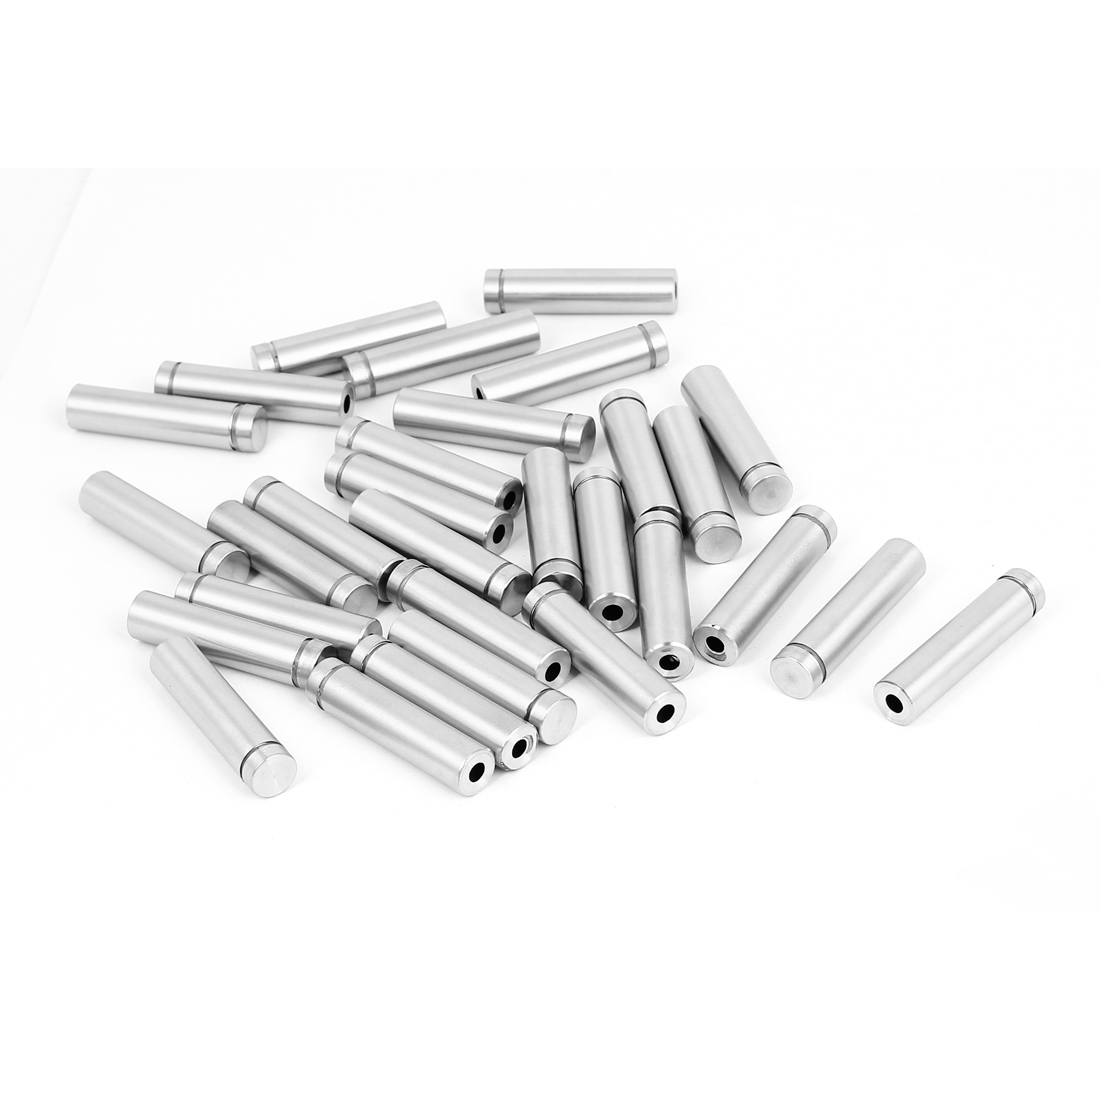 Unique Bargains 12mmx50mm Stainless Steel Decorative Advertising Screw Nails Silver Tone 30Pcs